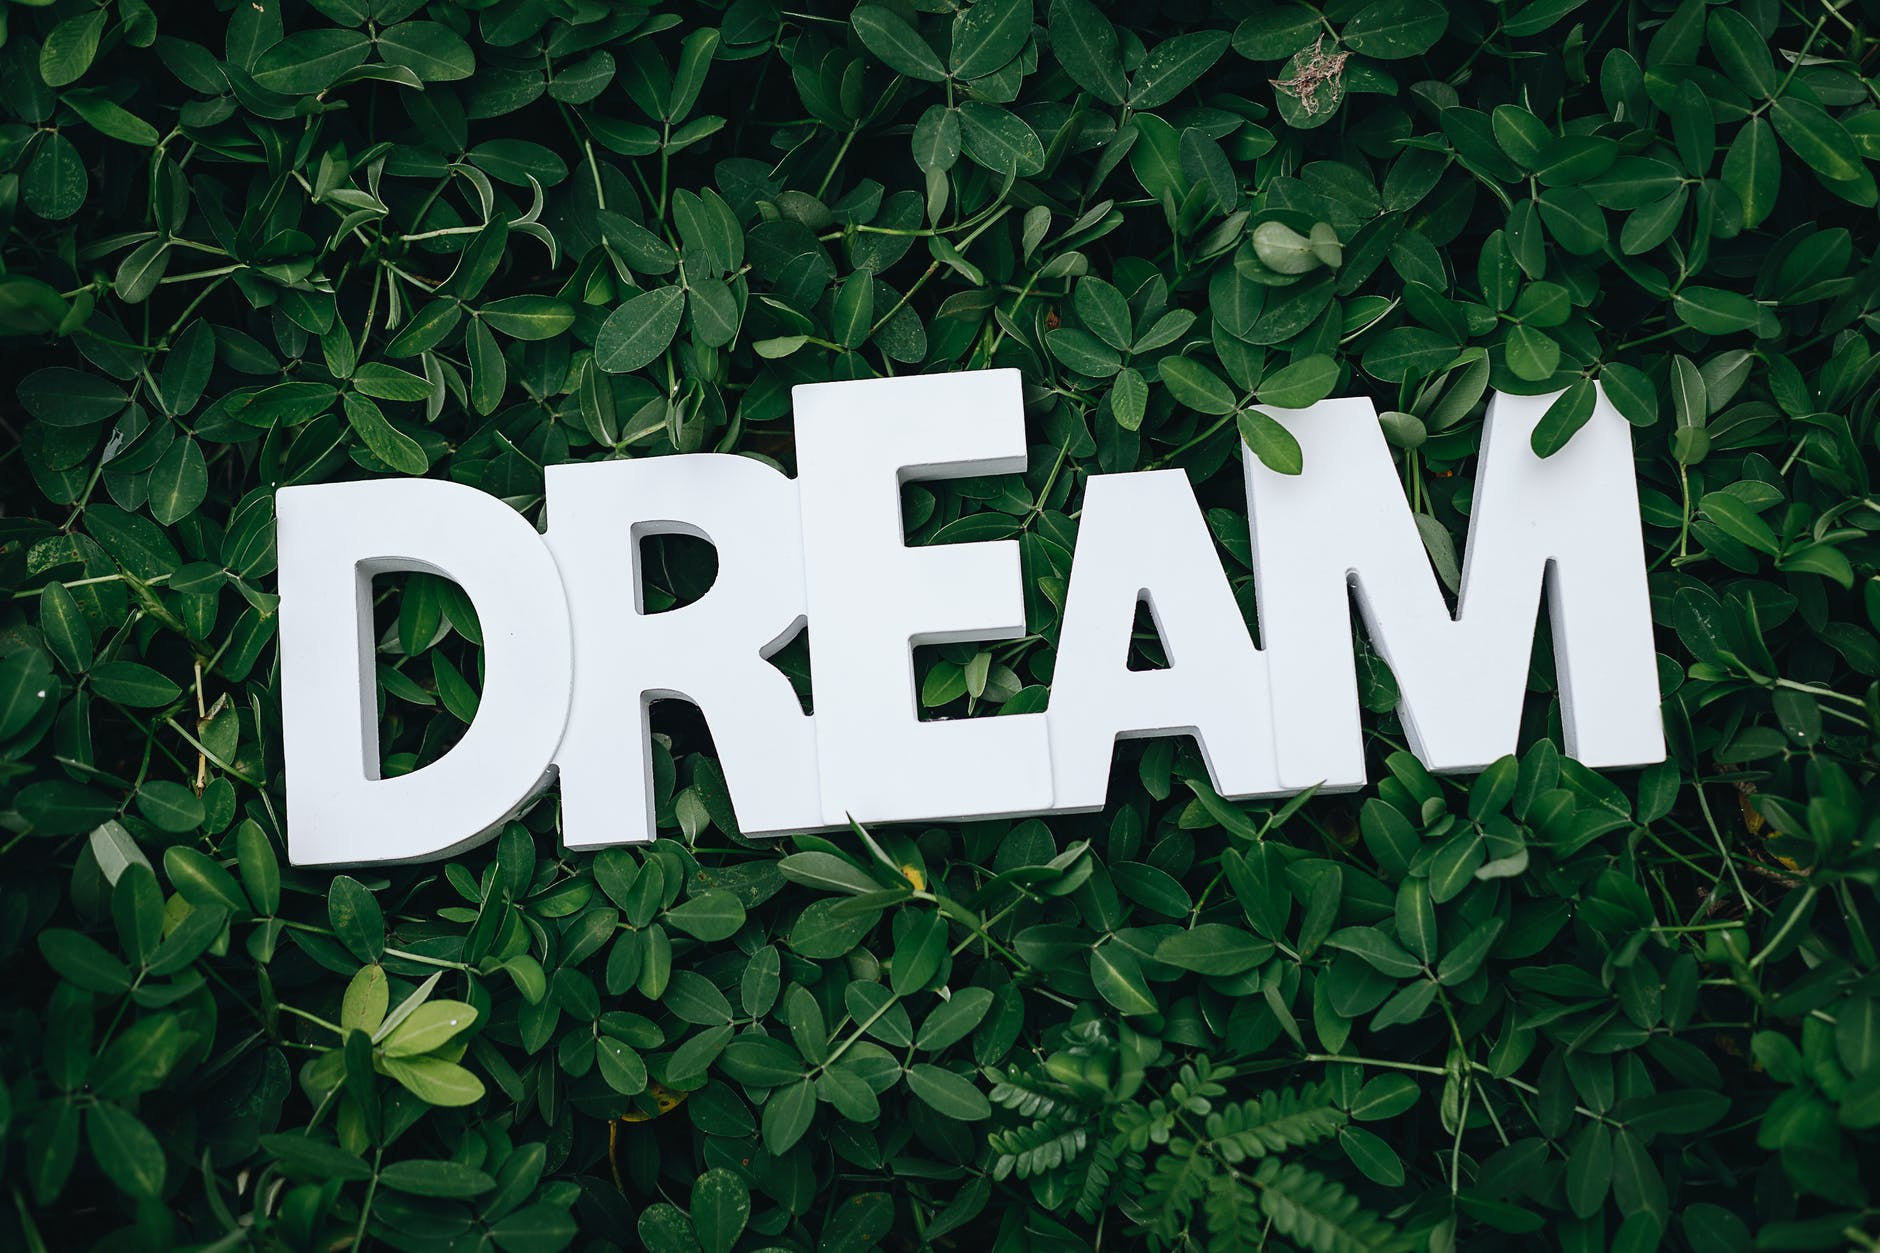 The average human dream lasts 2-3 seconds